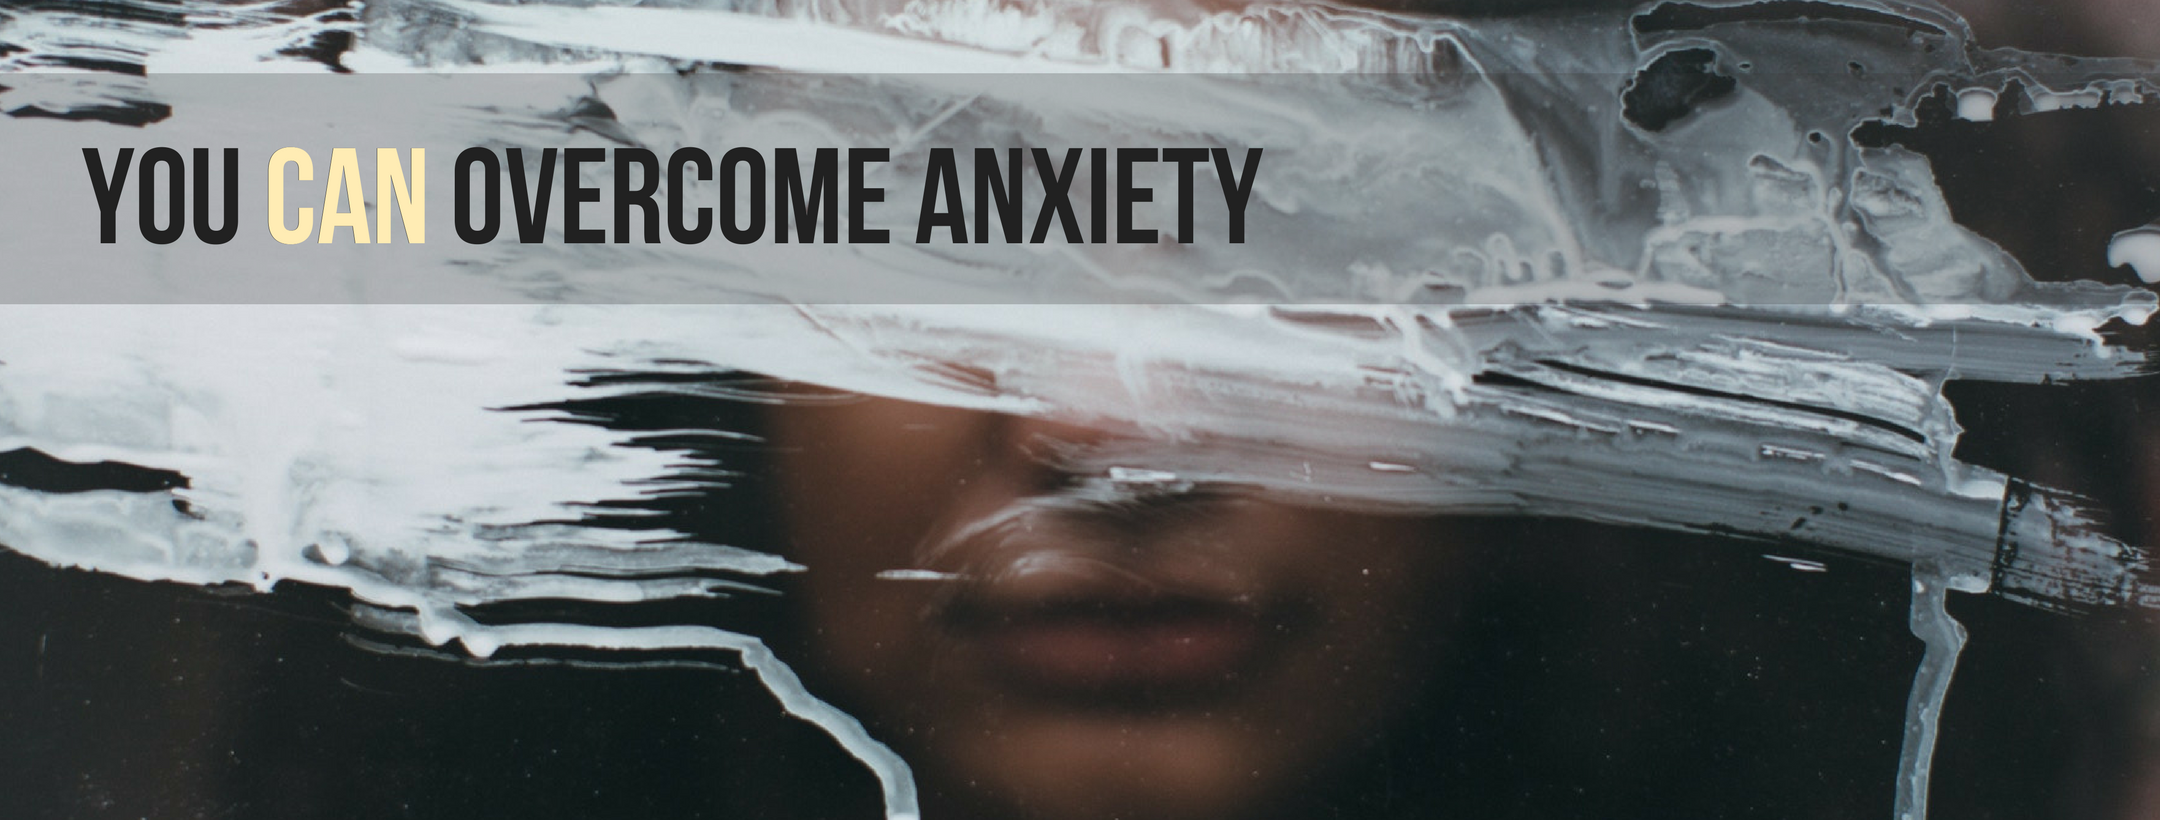 Anxiety page_image 1.png